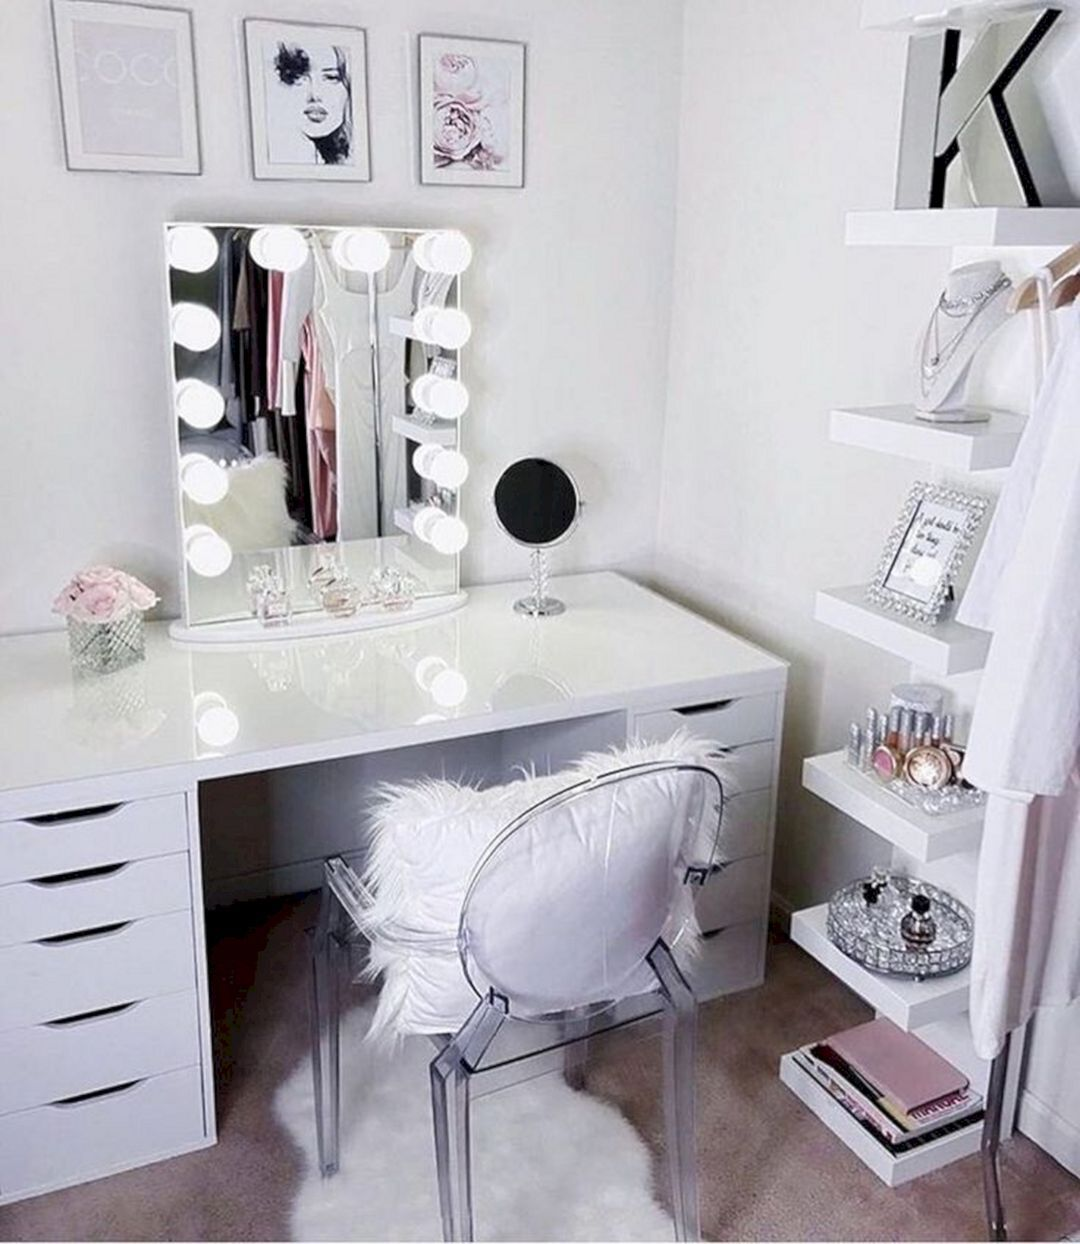 15 Impressive Diy Makeup Vanity Decoration Ideas That You Will Love It Vanity Decor Room Decor Beauty Room